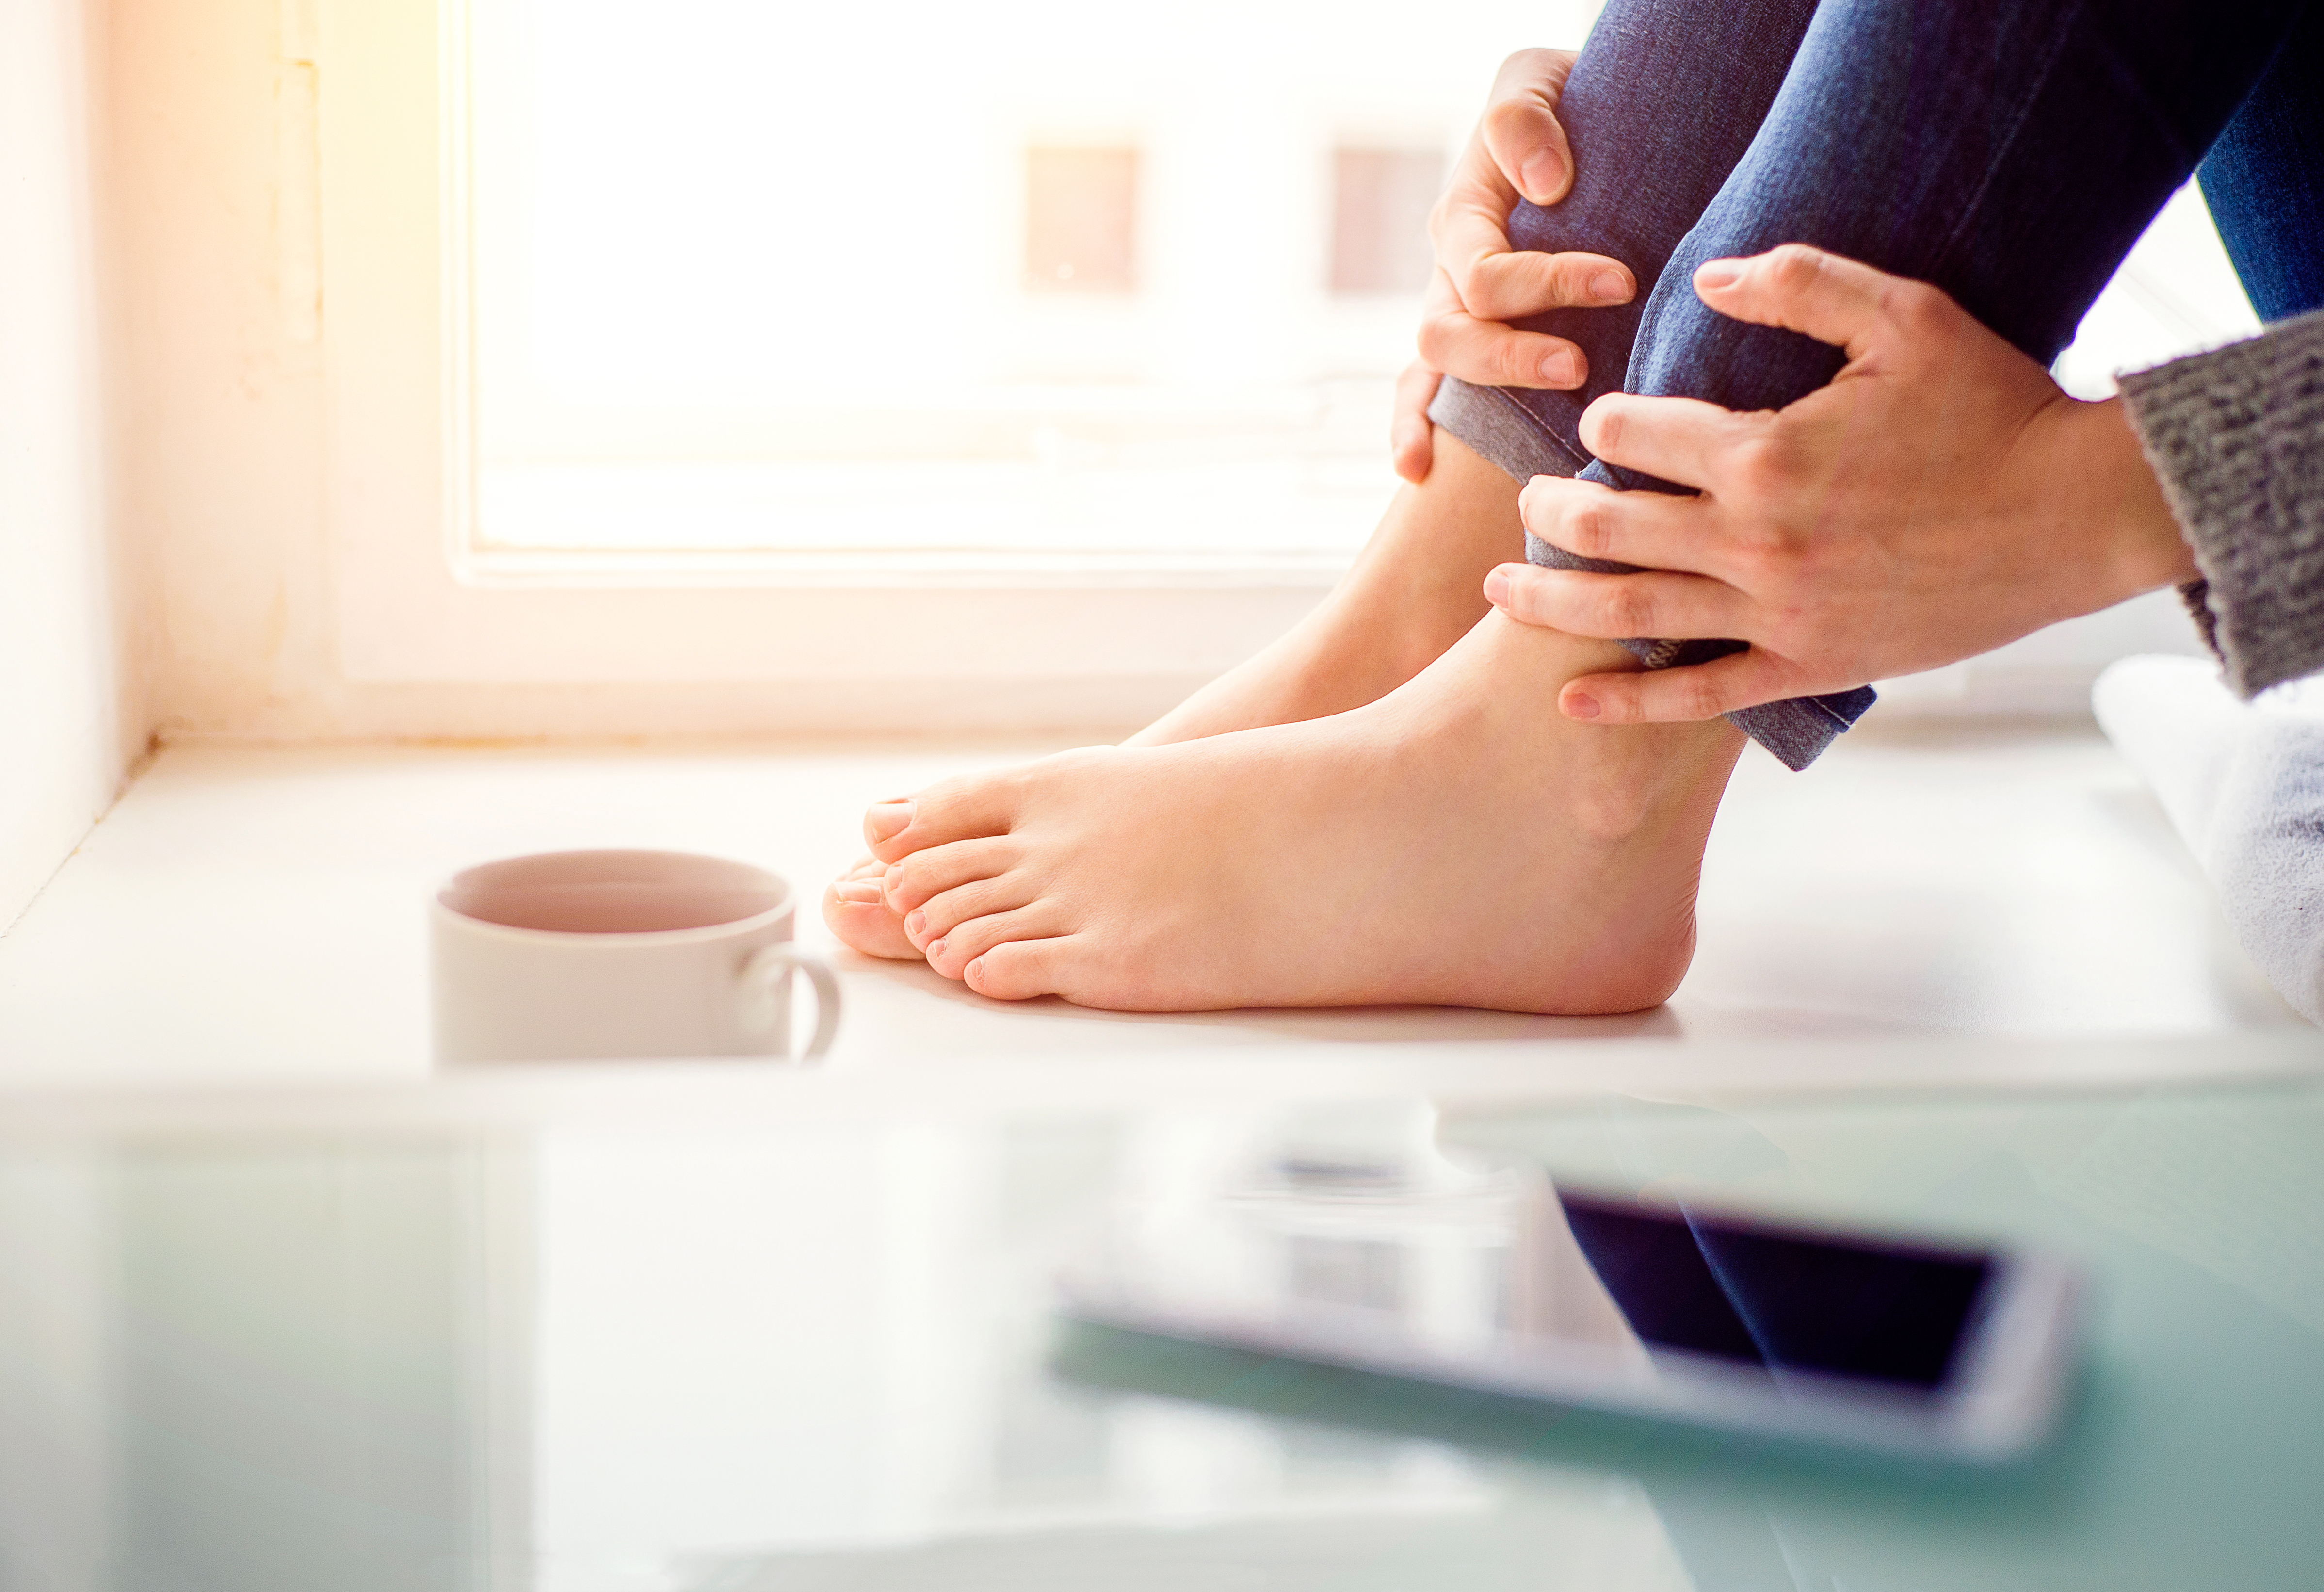 How to Get Rid of Tingly, Swollen and Bloated Feet | LEAFtv